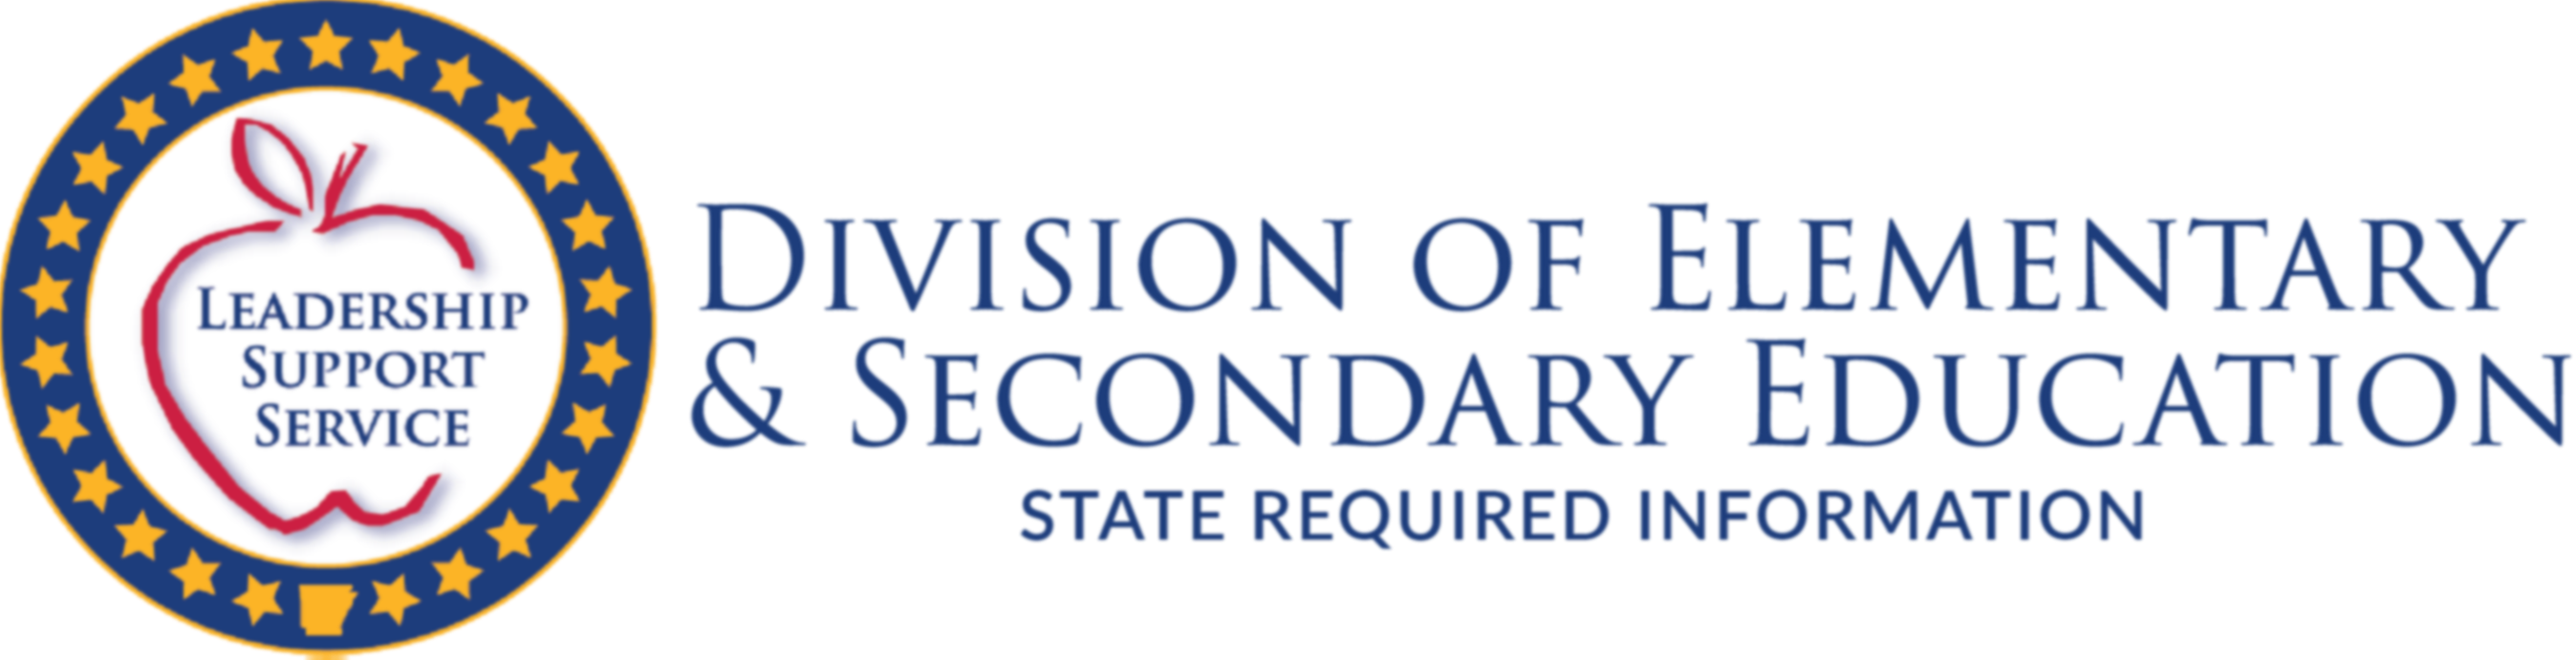 Arkansas Division of Elementary and Secondary Education